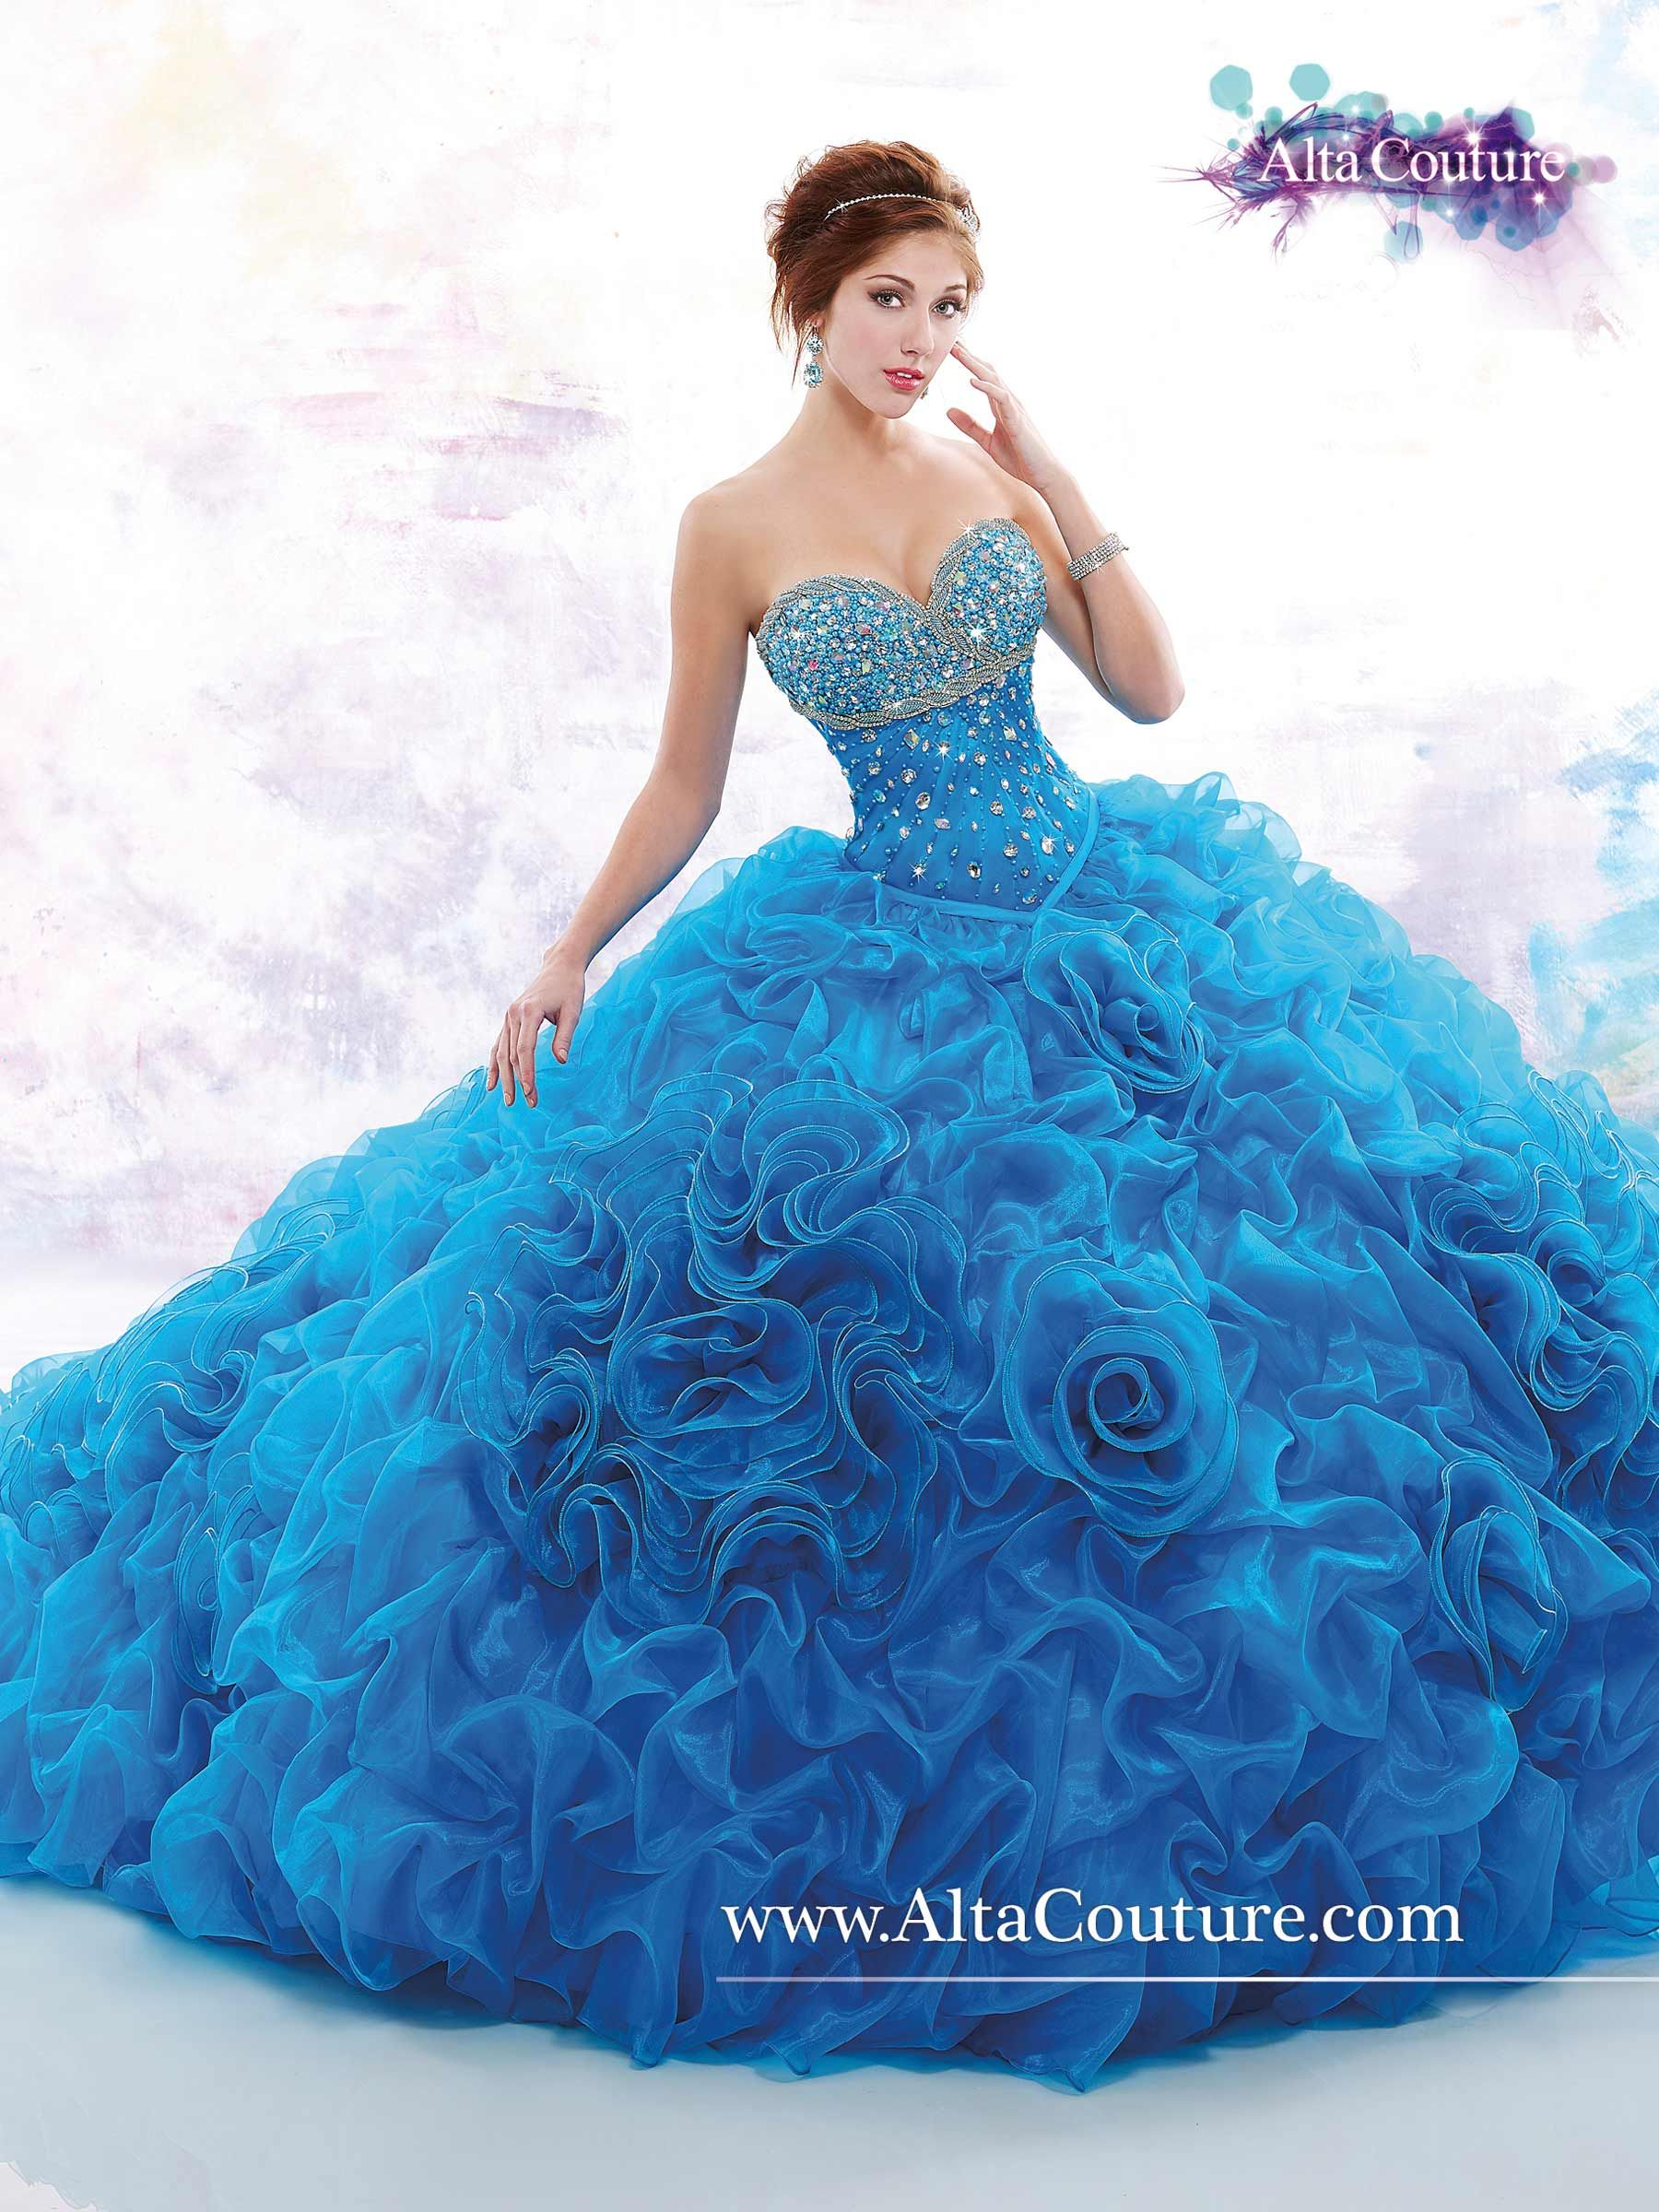 pinfabiola solis on sweet 16 | pinterest | gowns, ball gowns and